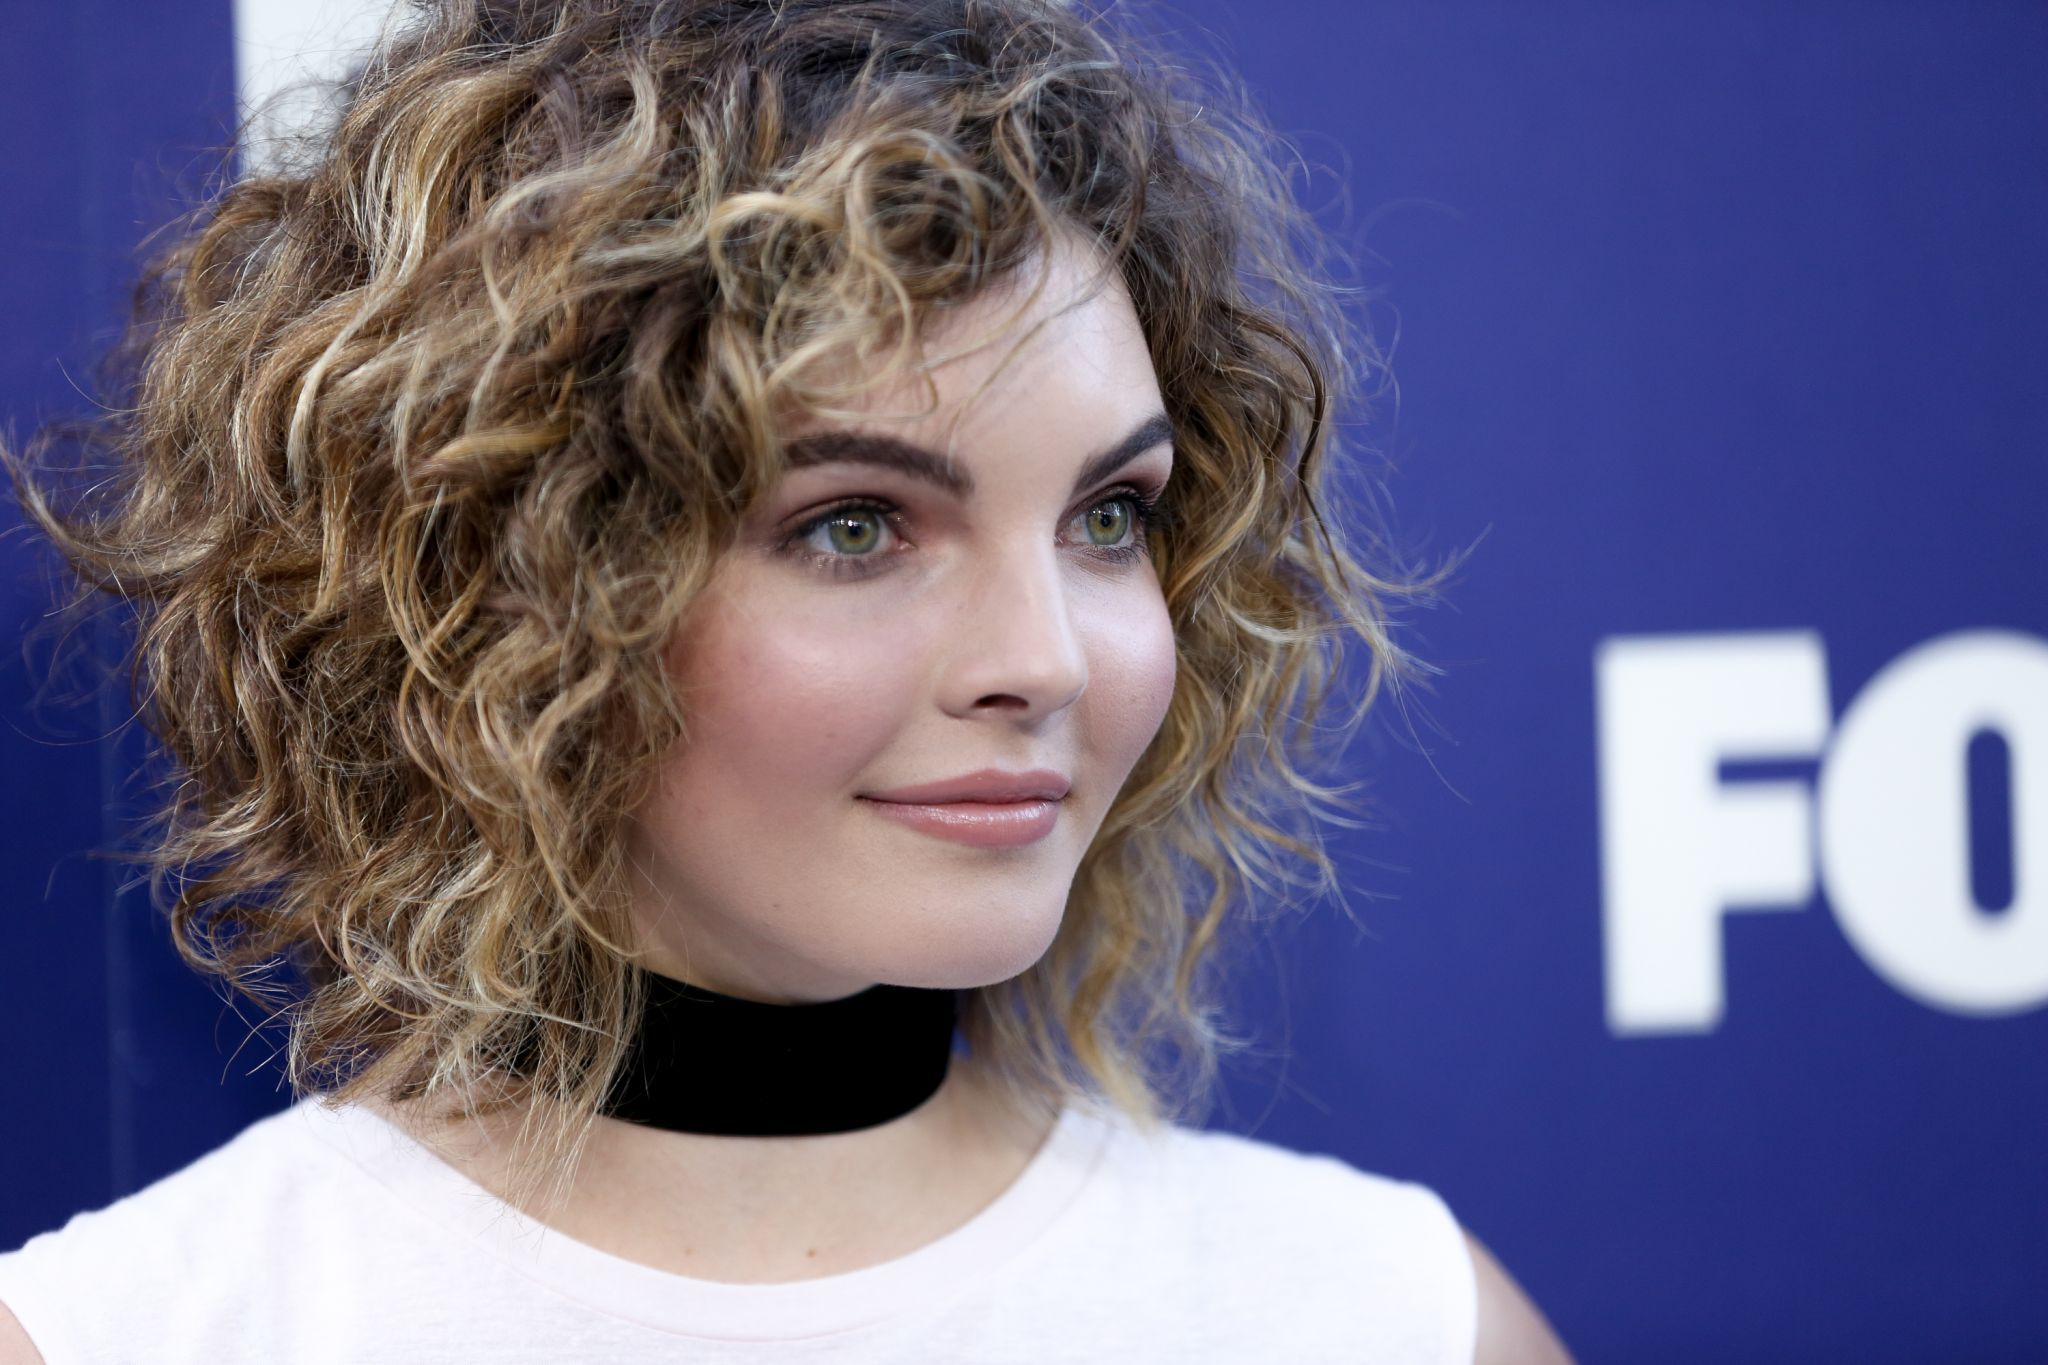 camren bicondova (below) and michelle pfeiffer. both played